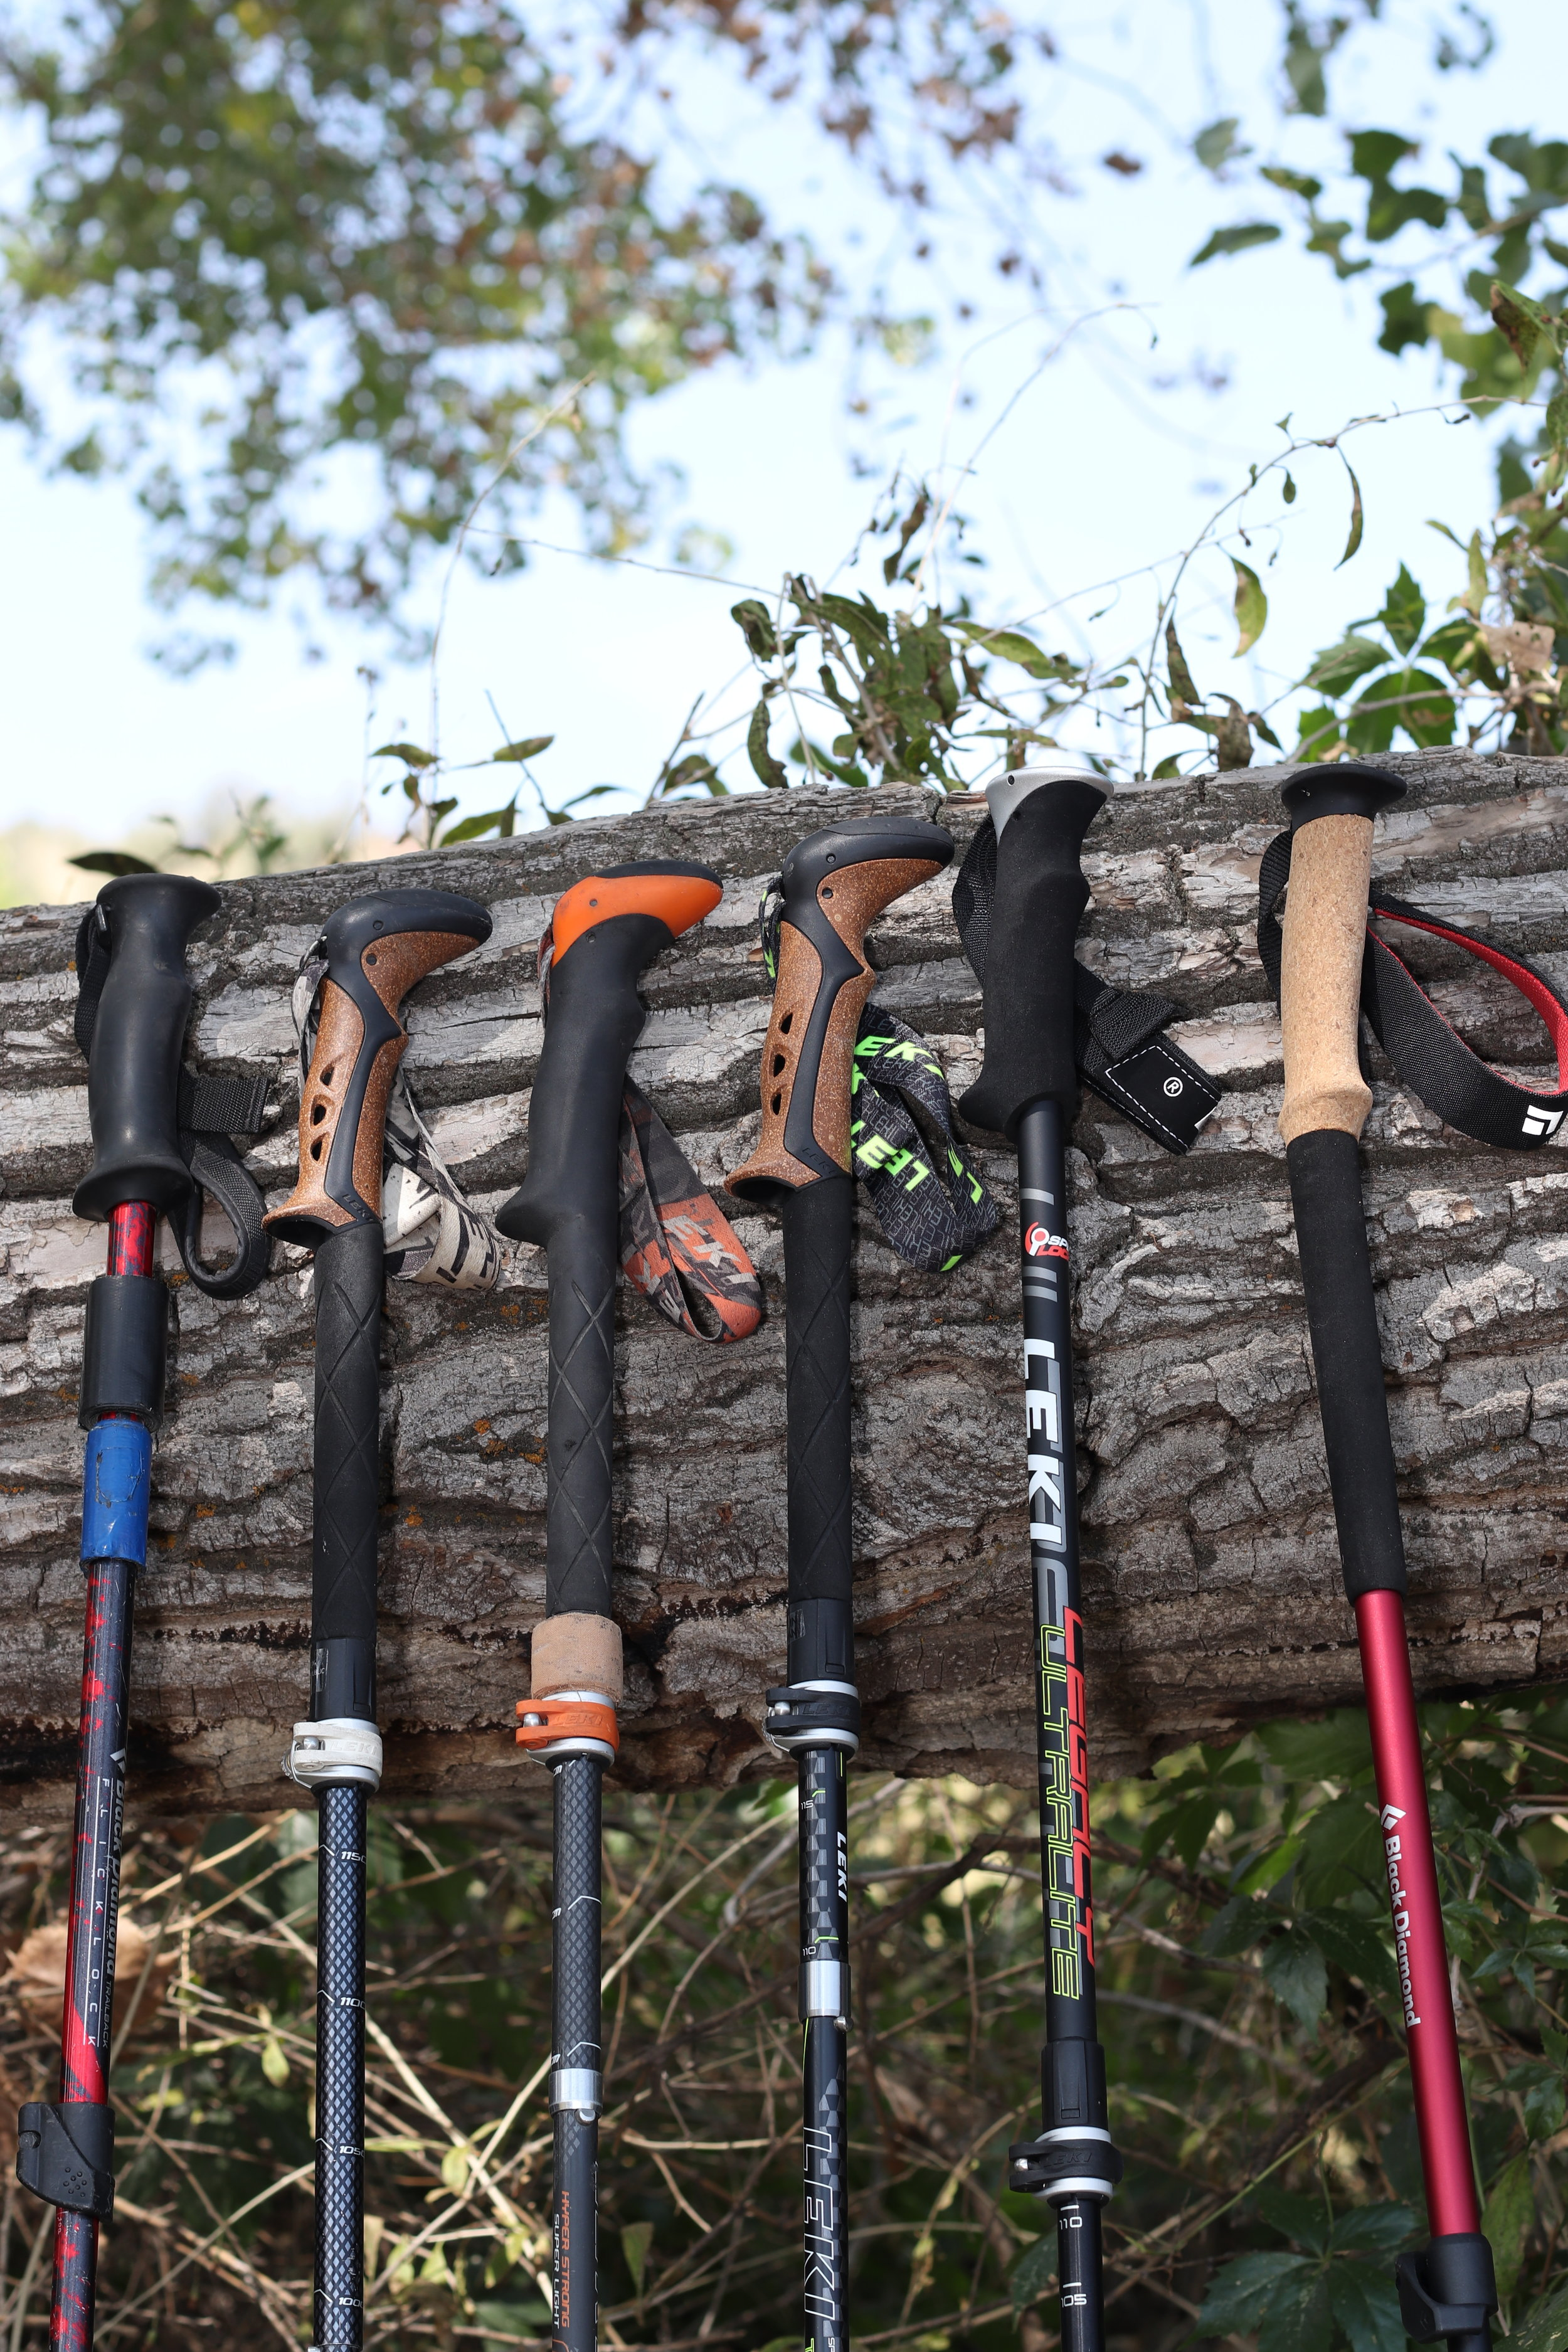 READ THE FULL COMPARATIVE REVIEW OF HIKING POLES HERE -